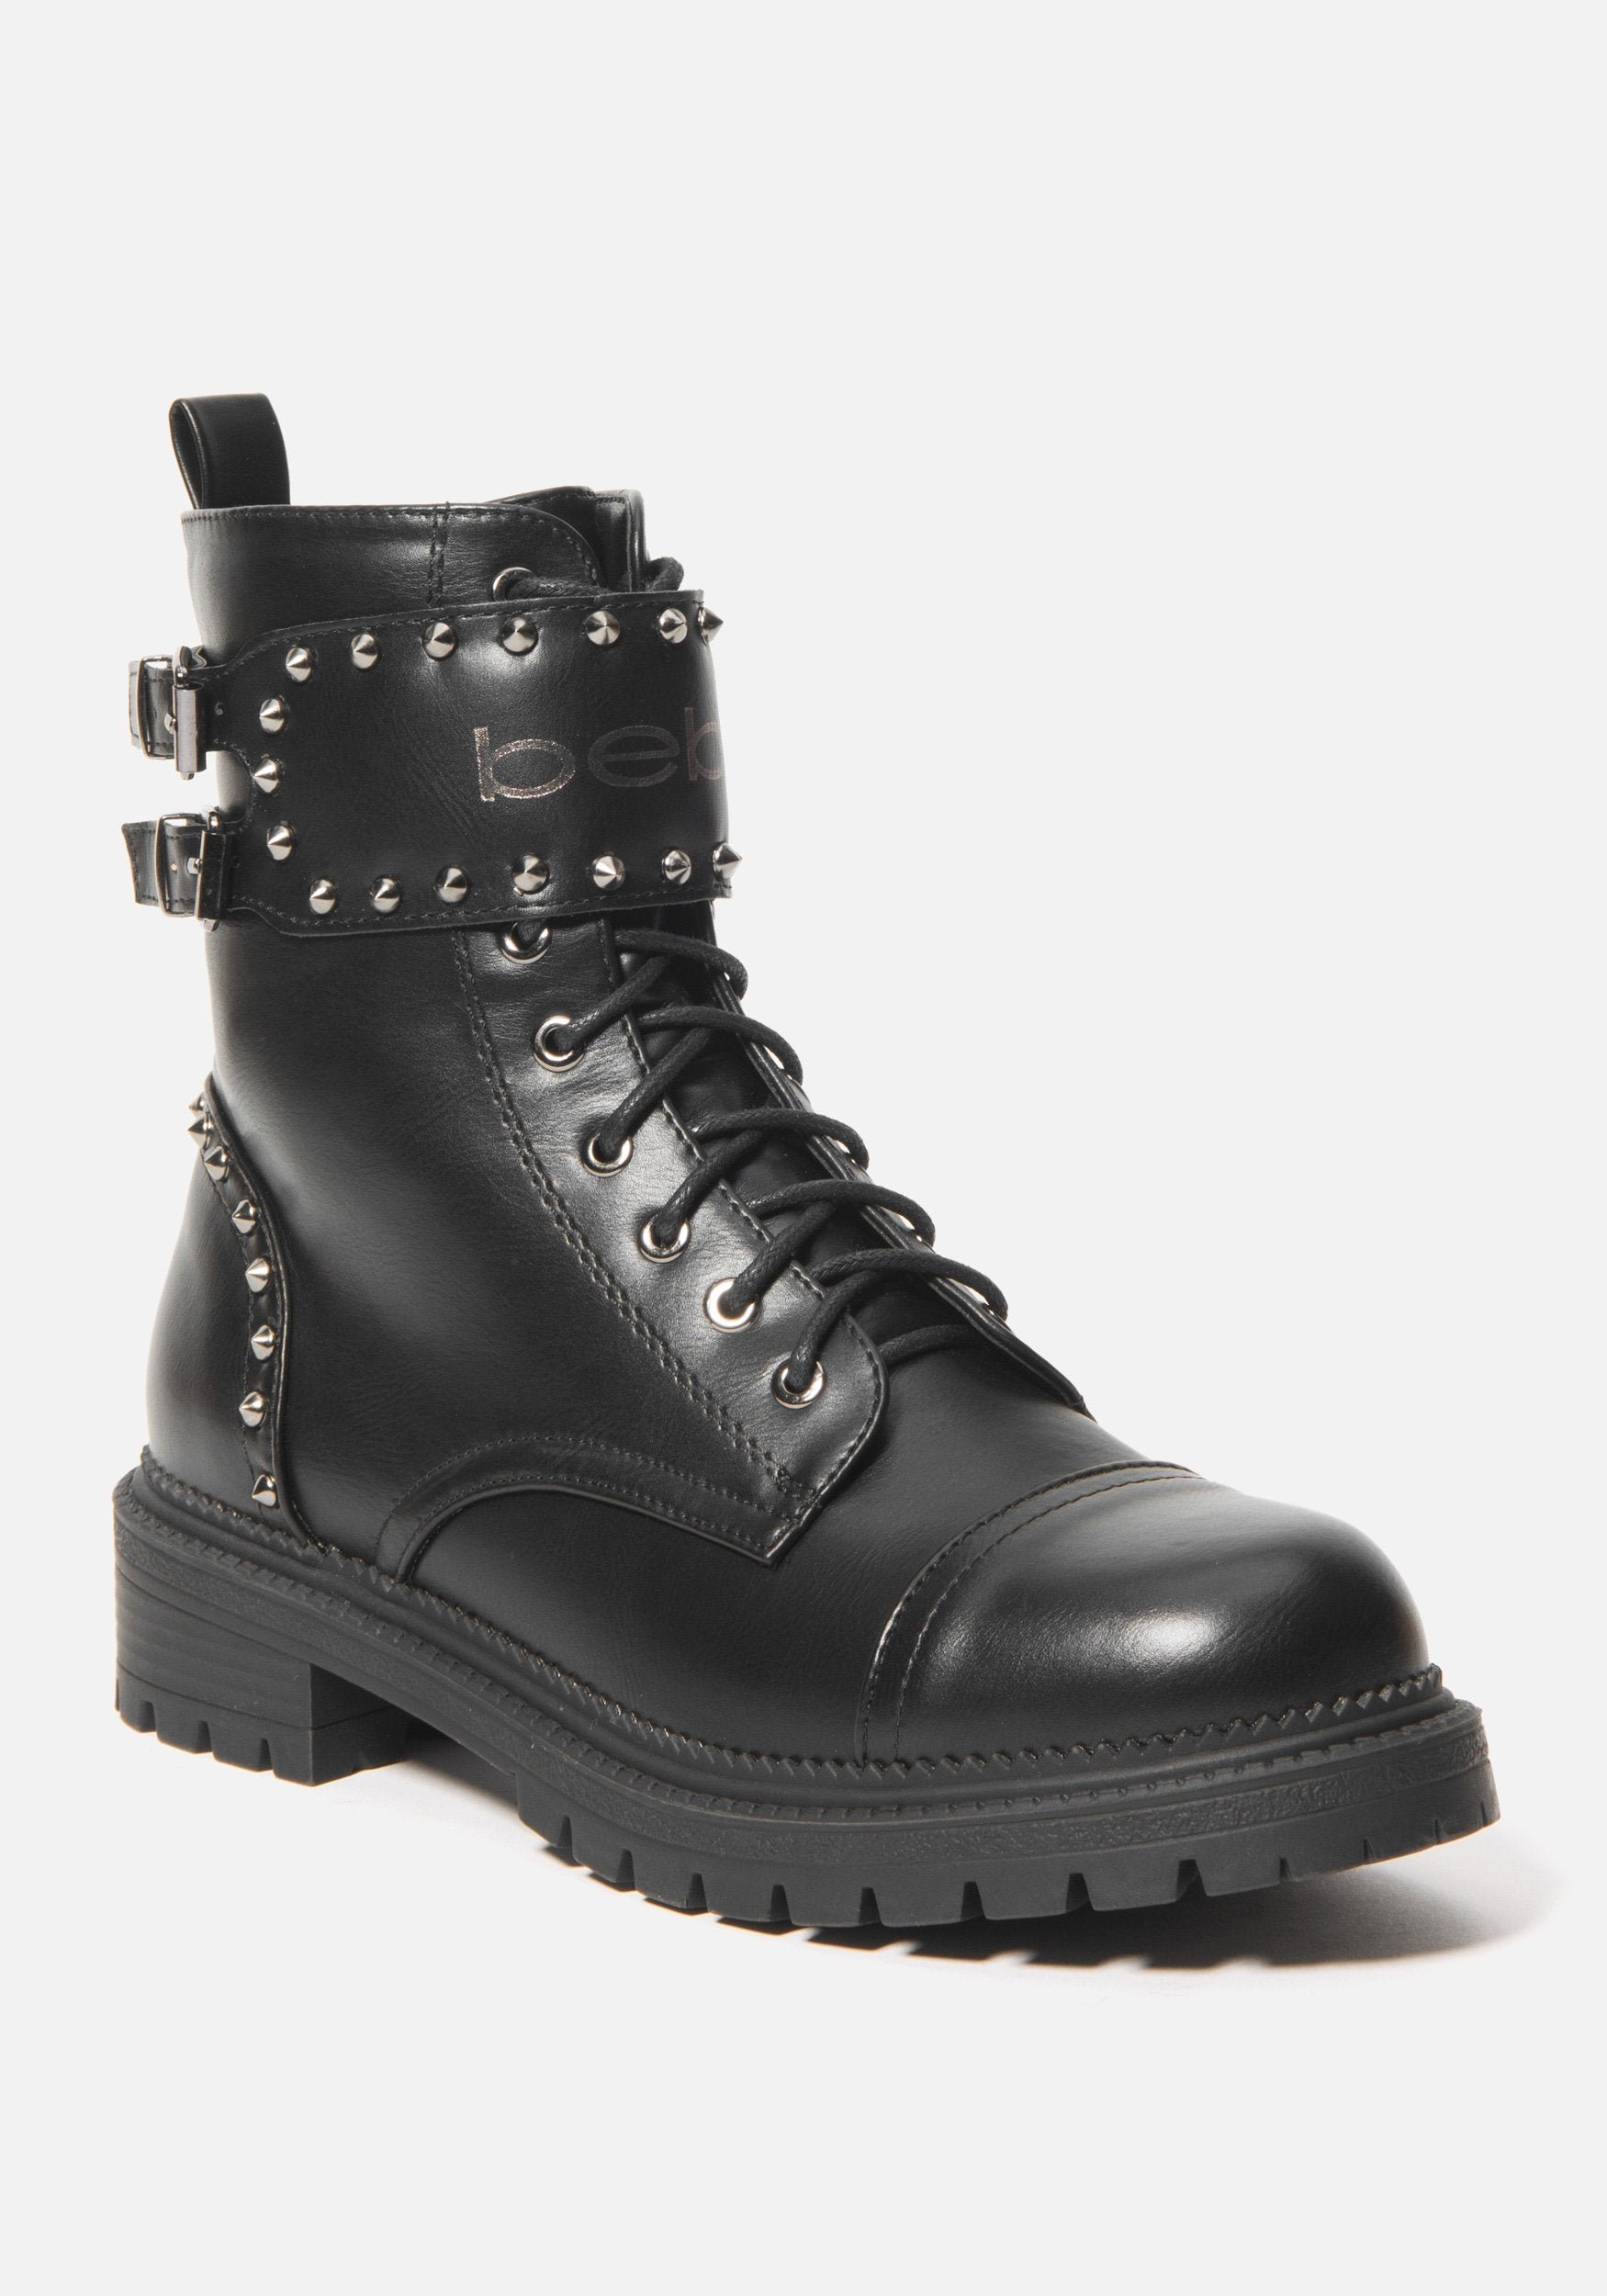 Bebe Women's Dalila Combat Boots, Size 6 in Black Synthetic